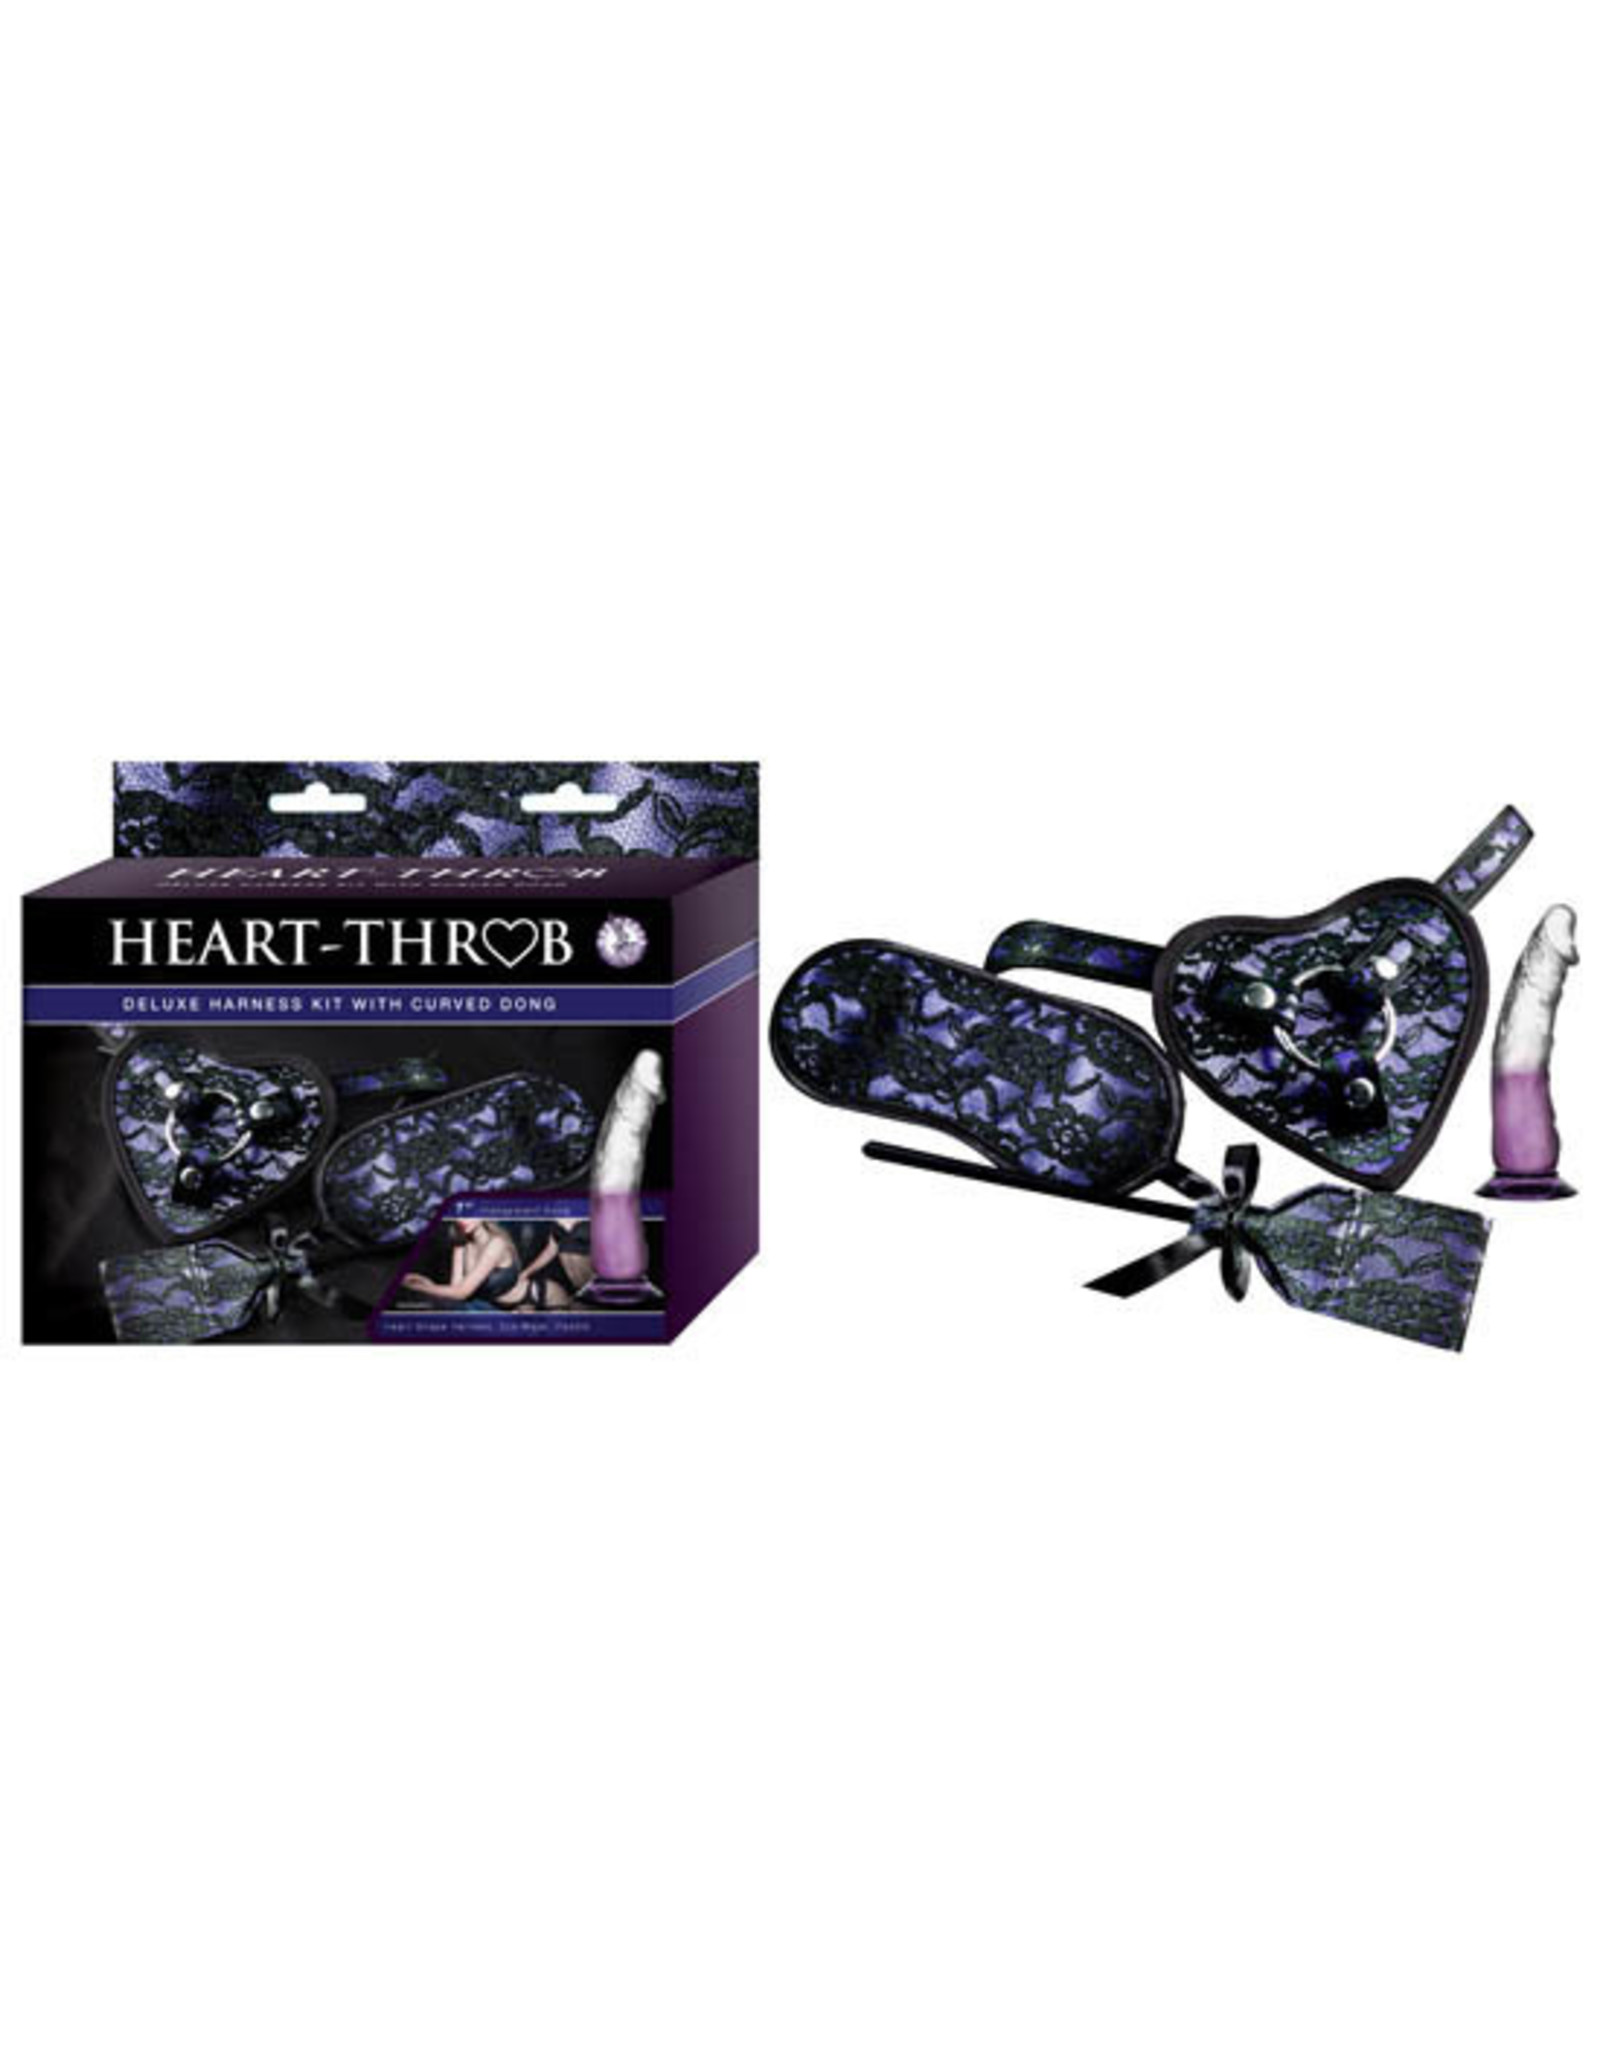 Nasstoys Heart Throb Deluxe Harness Kit with Curved Dong (Mask & Paddle) Purple